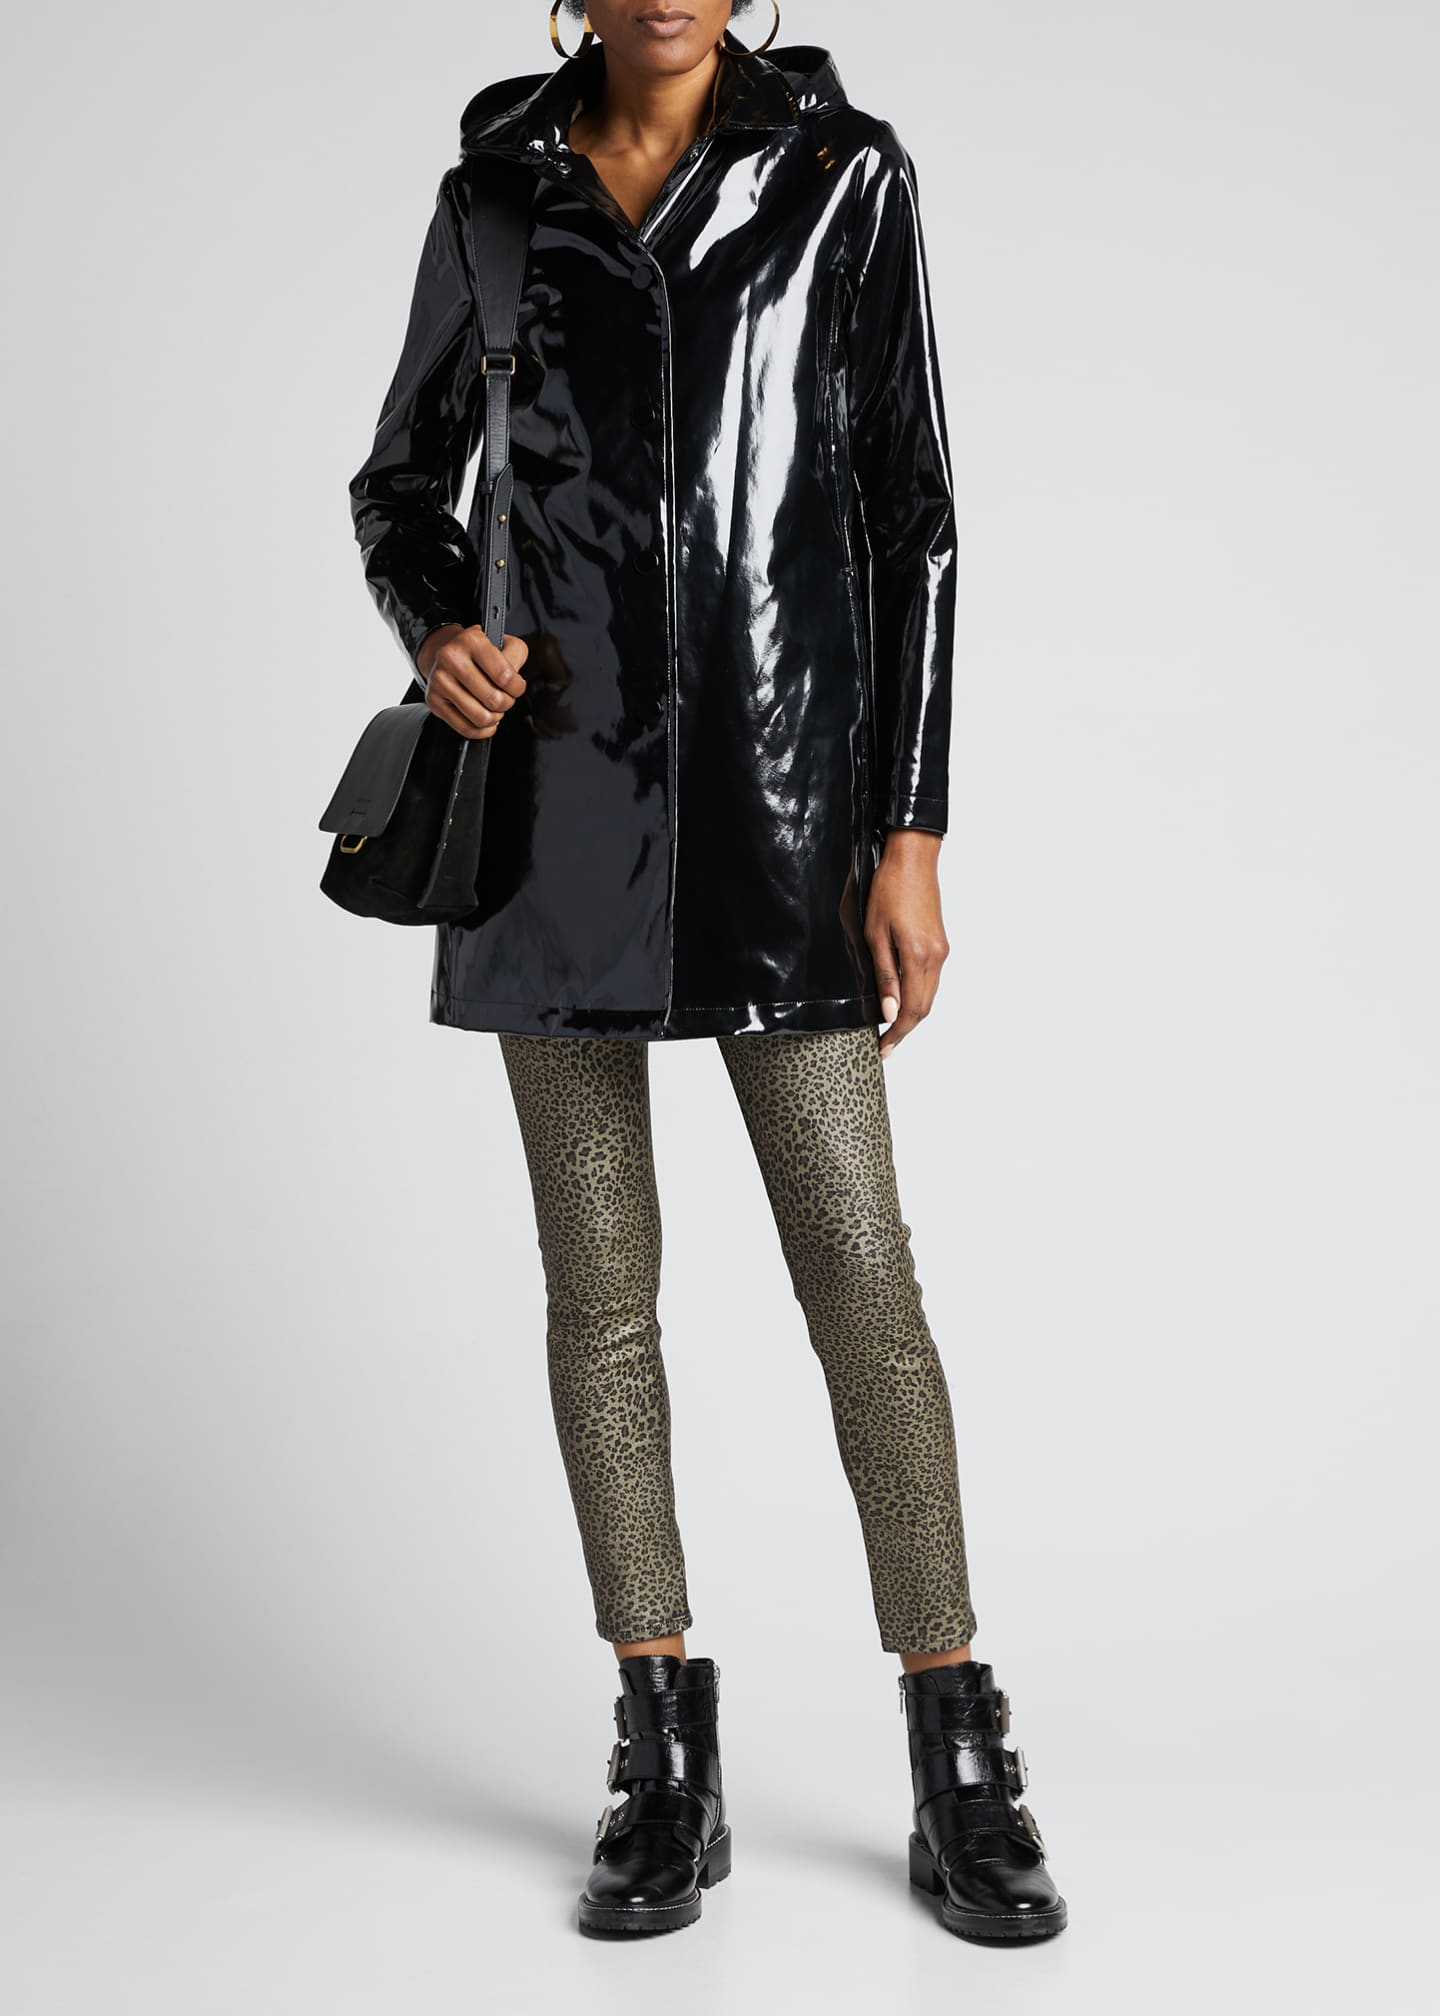 Jane Post Faux-Fur Lined Iconic Slicker w/ Detachable